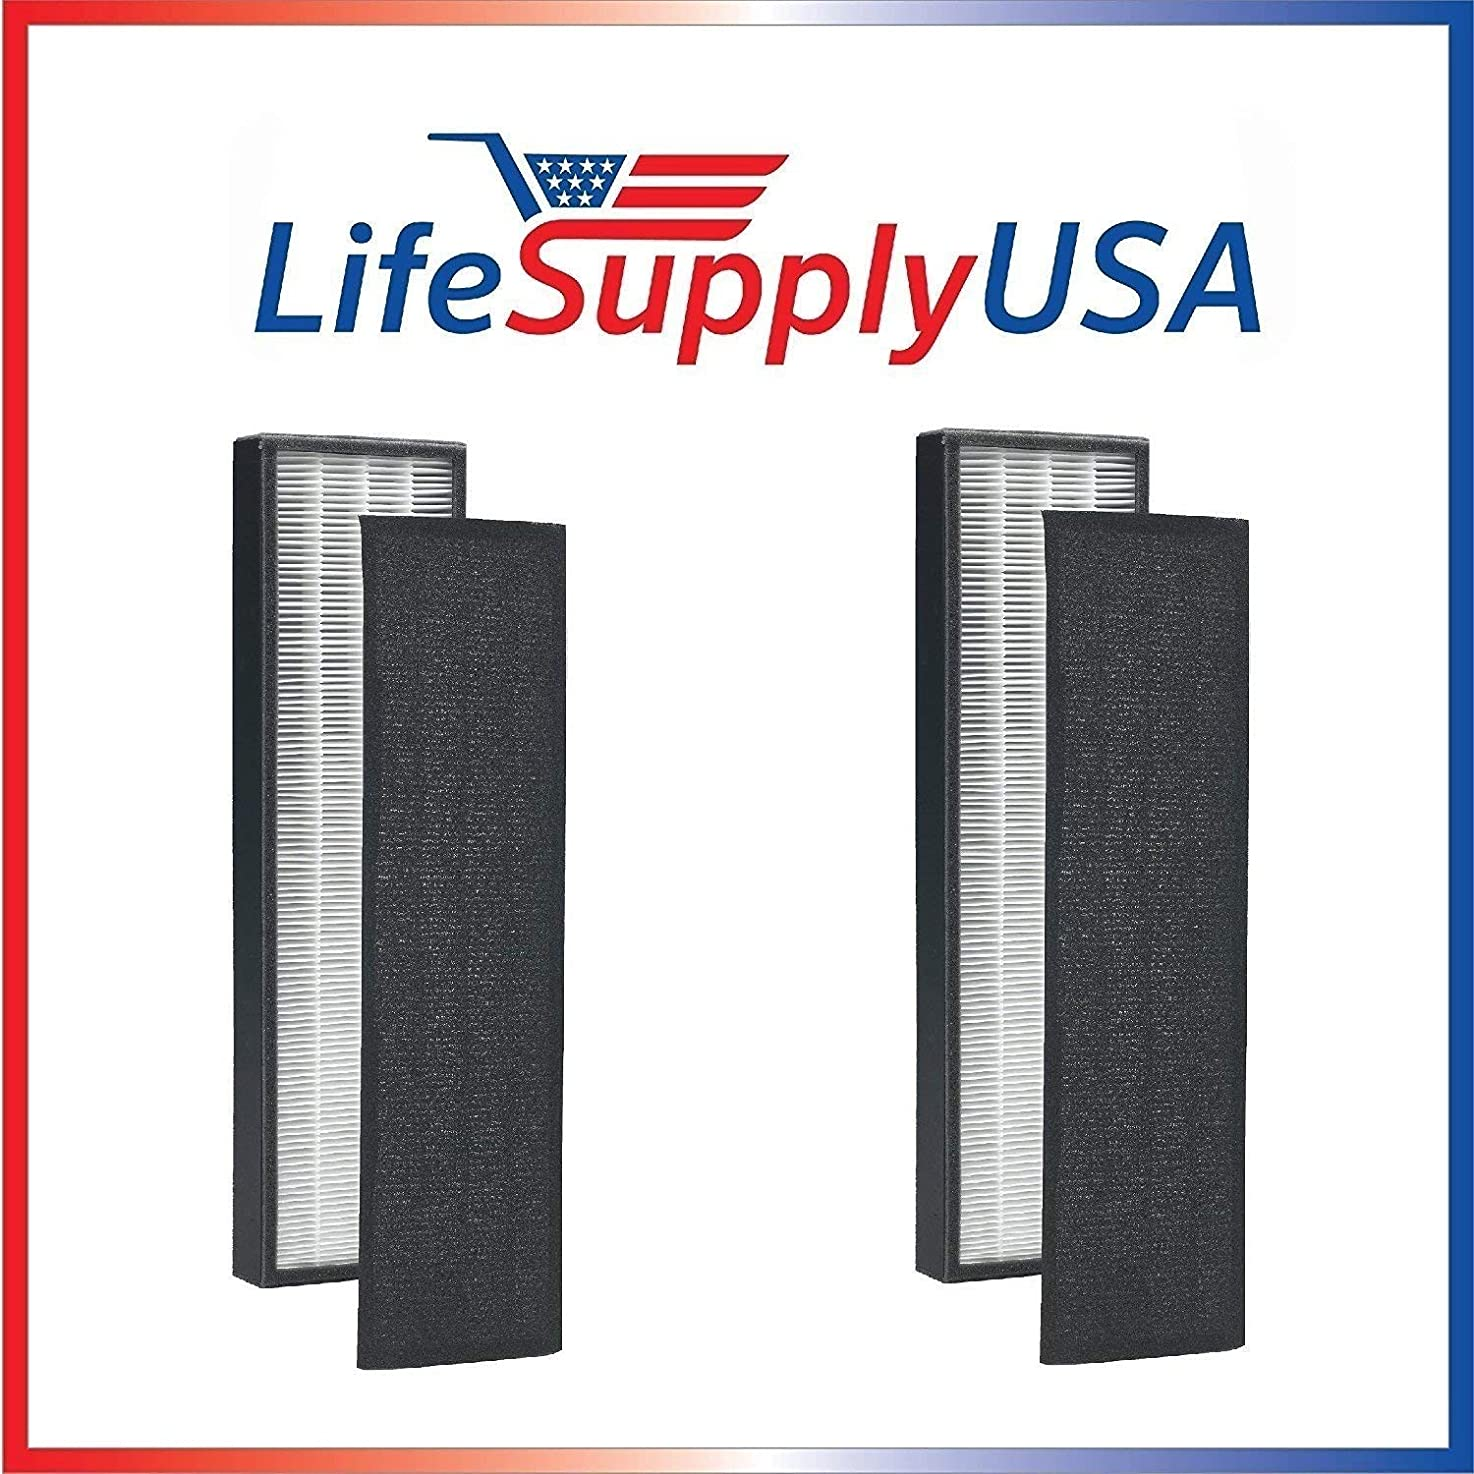 LifeSupplyUSA 2 Pack - True HEPA + Pre Filter Replacement Filter for C FLT5250 PET Germ Guardian Will fit Germguardian 5000 5111 and 5250